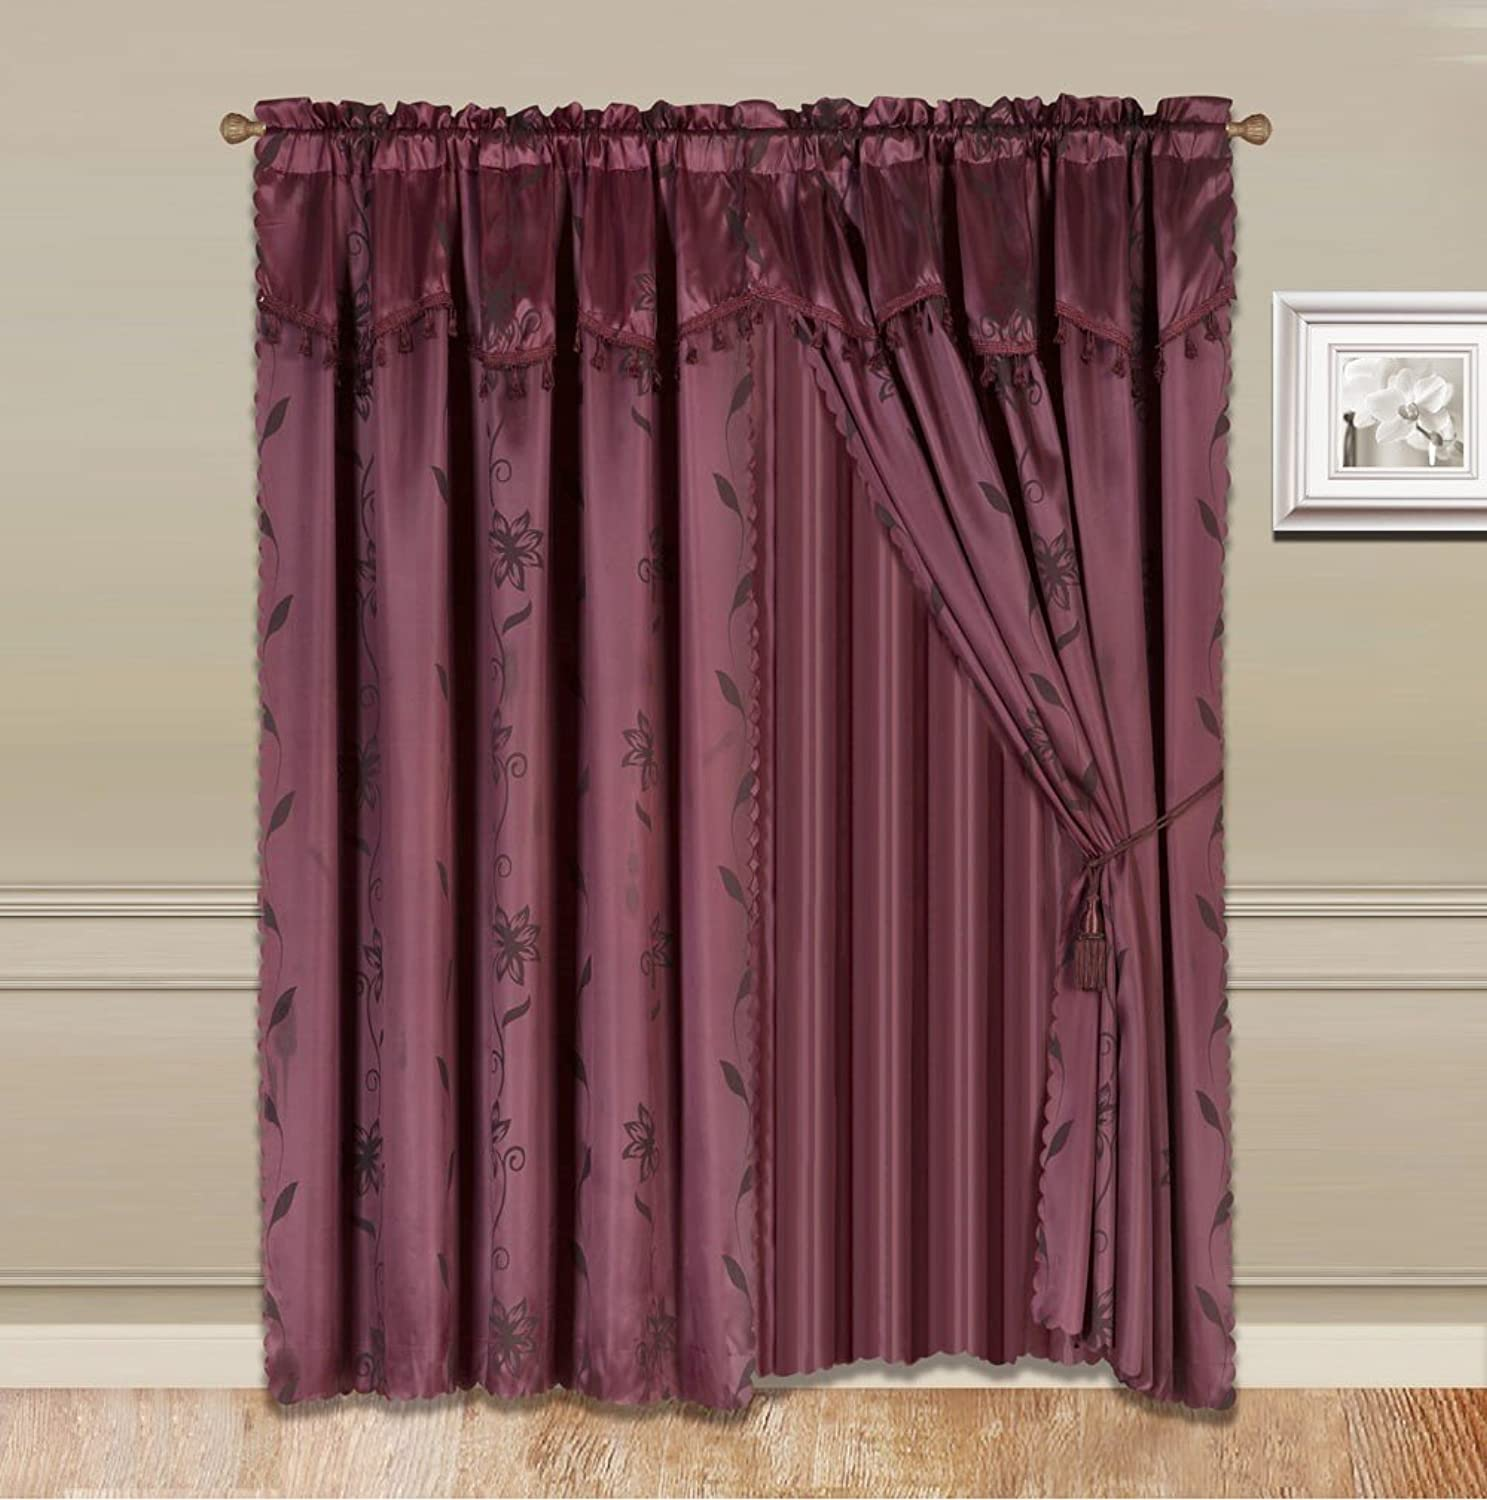 GorgeousHomeLinen 8-Piece Burgundy Nada Luxury Faux Jacquard Flower Design Panel, Rod Pocket Window Curtain Set Attached Valance, Panel, and Sheer- Includes 2 Tassels